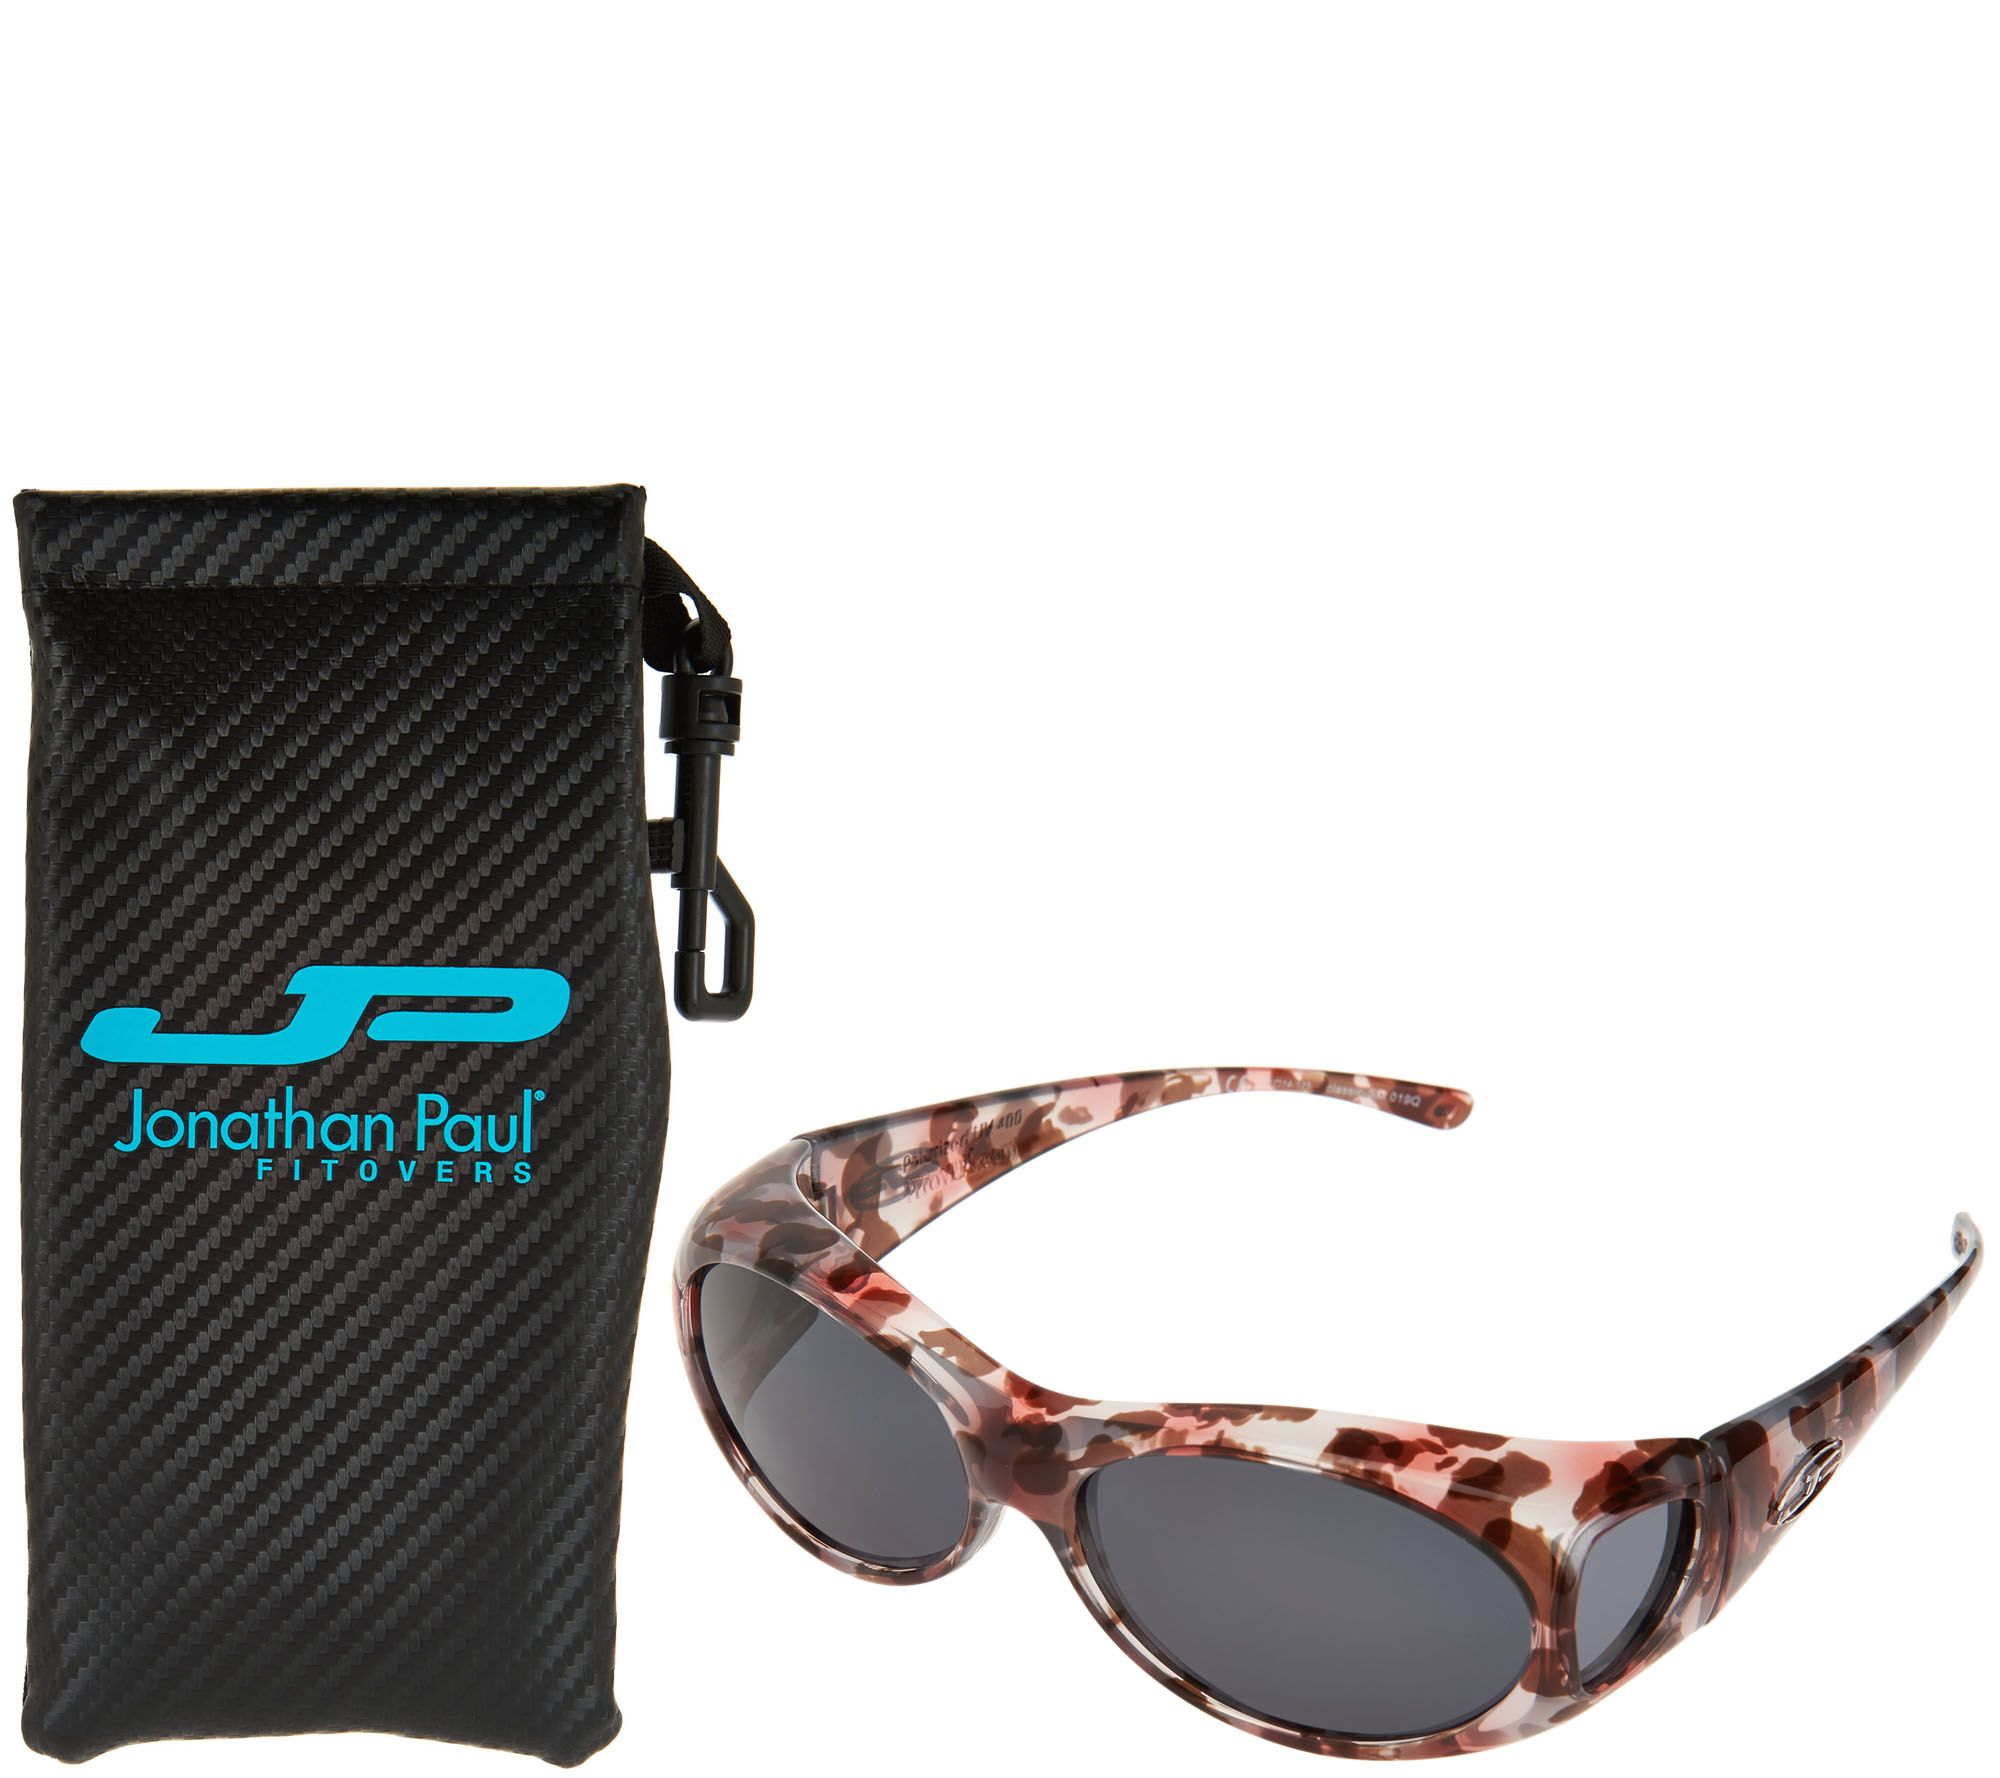 a1f6bab83f667 Jonathan Paul Classic Fitover Sunglasses with PolarVue Lenses and Case -  Page 1 — QVC.com